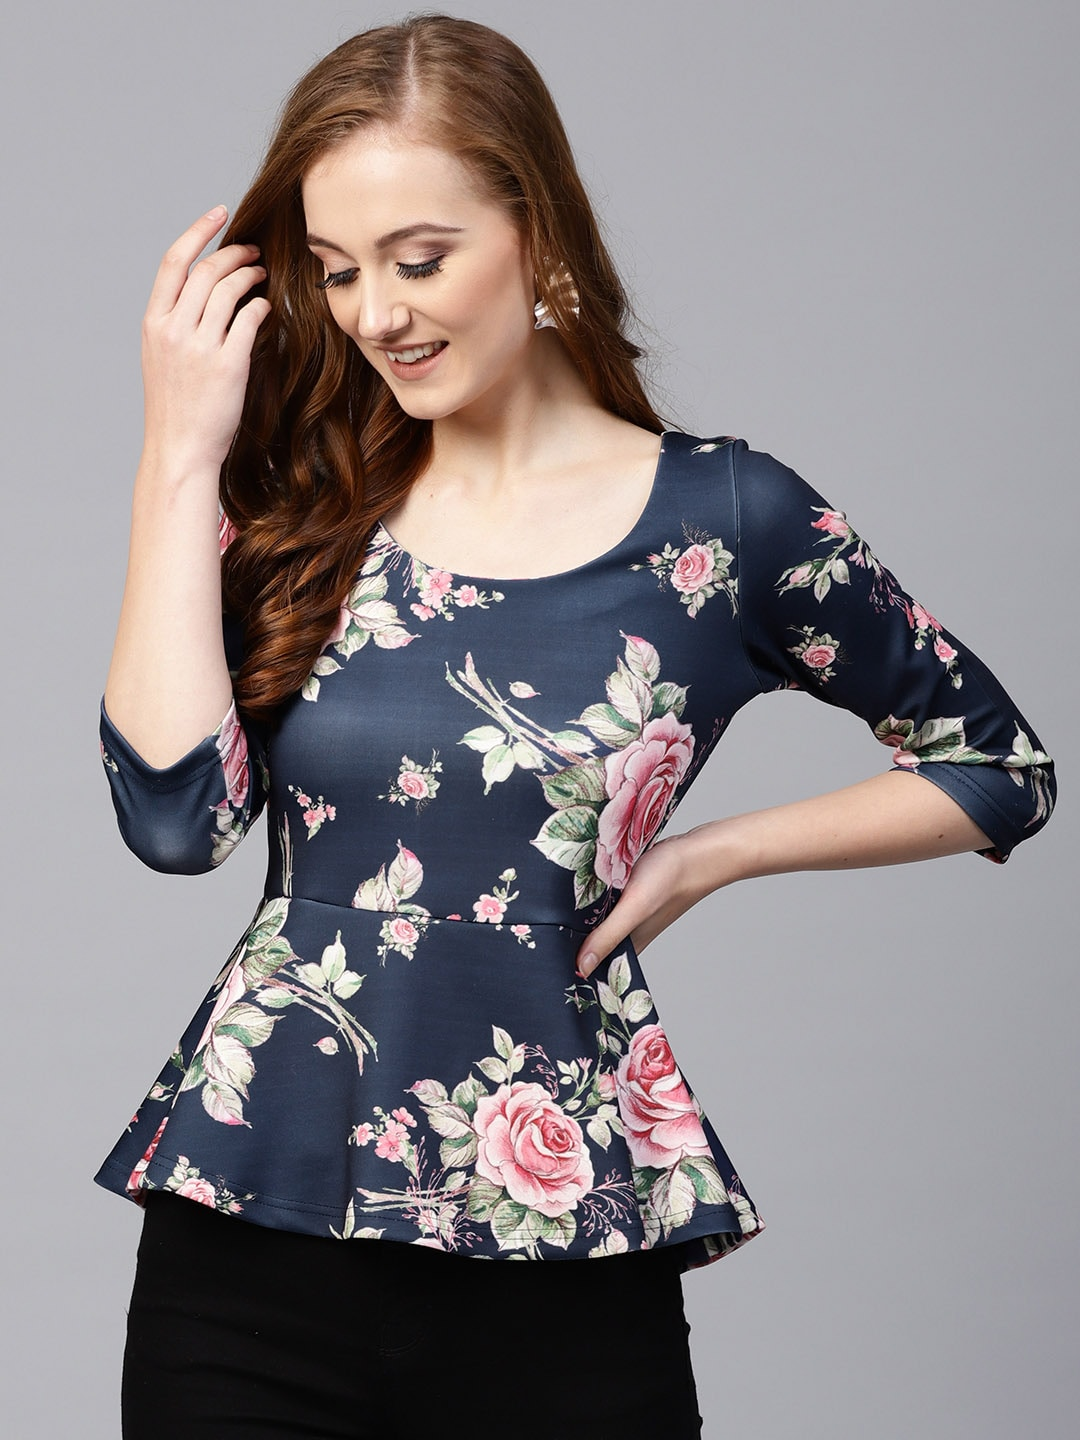 5014cc8826e Floral Print Tops - Buy Floral Print Tops online in India